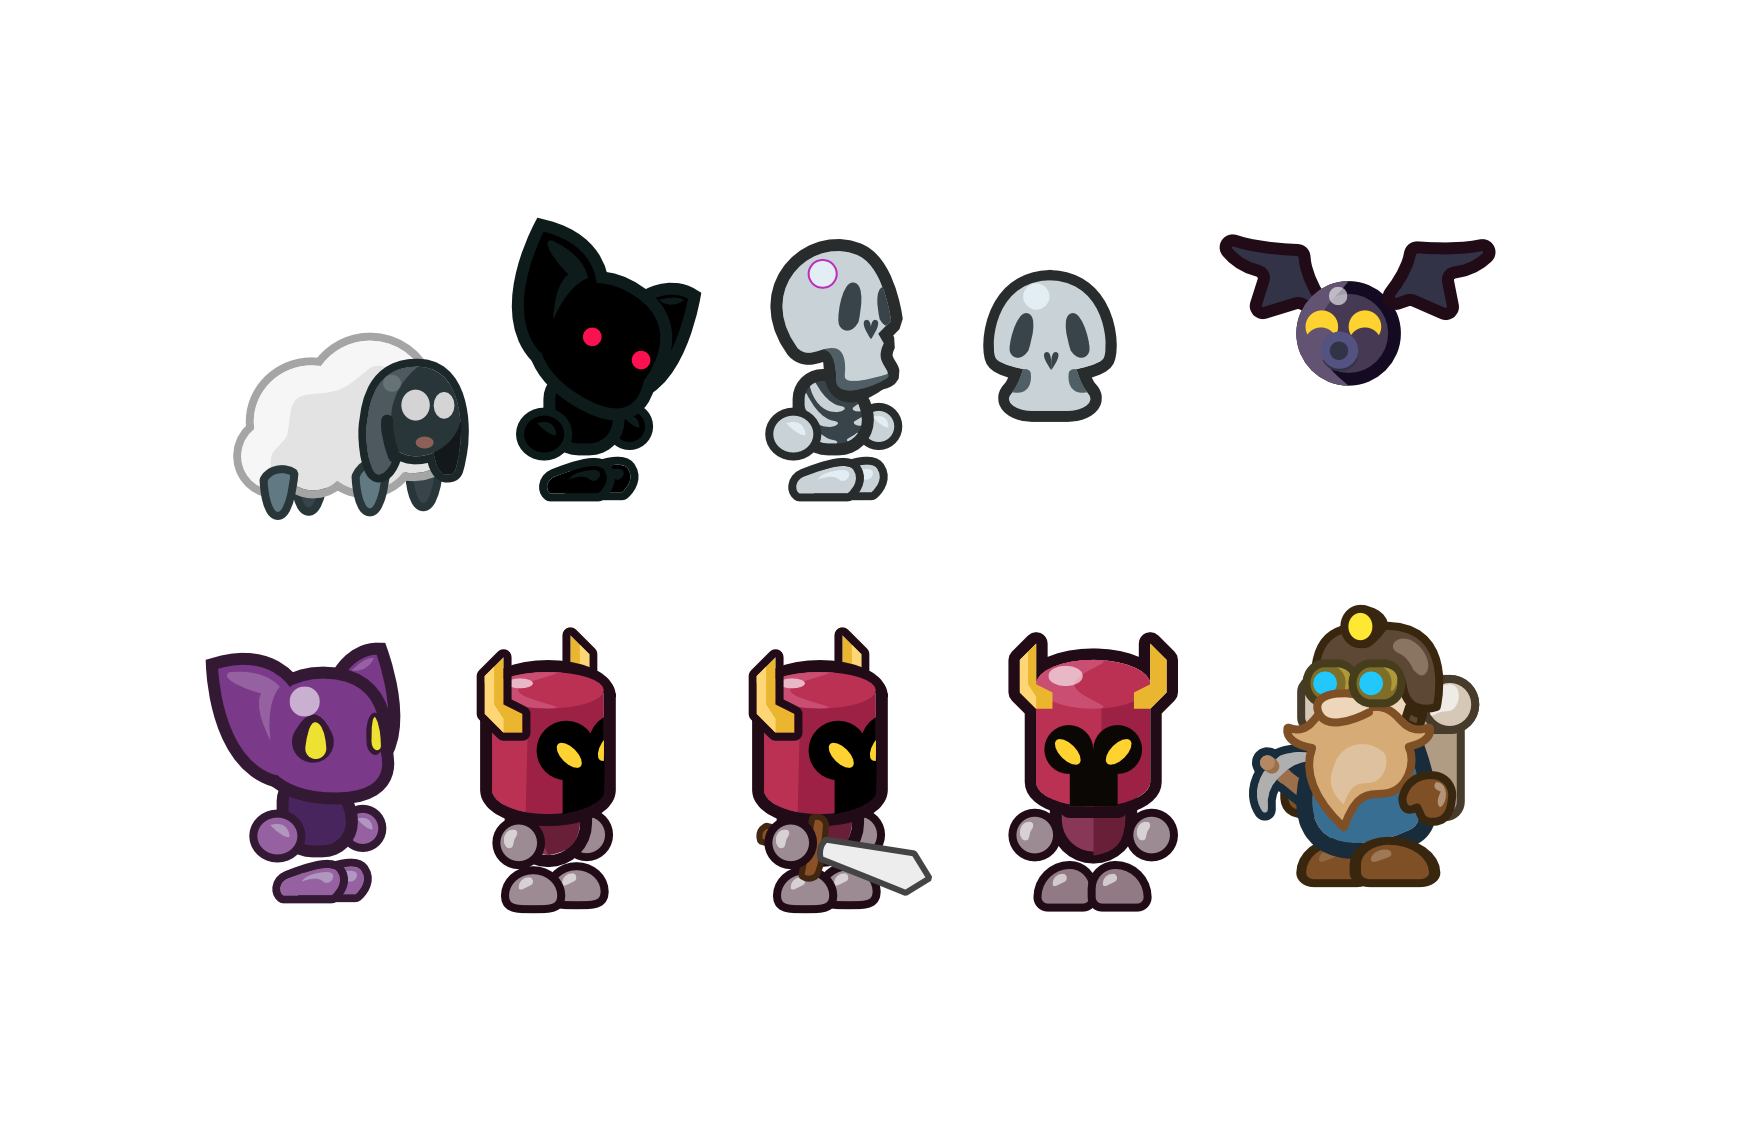 Minions Within A Dungeon Game Characters So Dar Game Design Game Development Game Gaming Indie Game